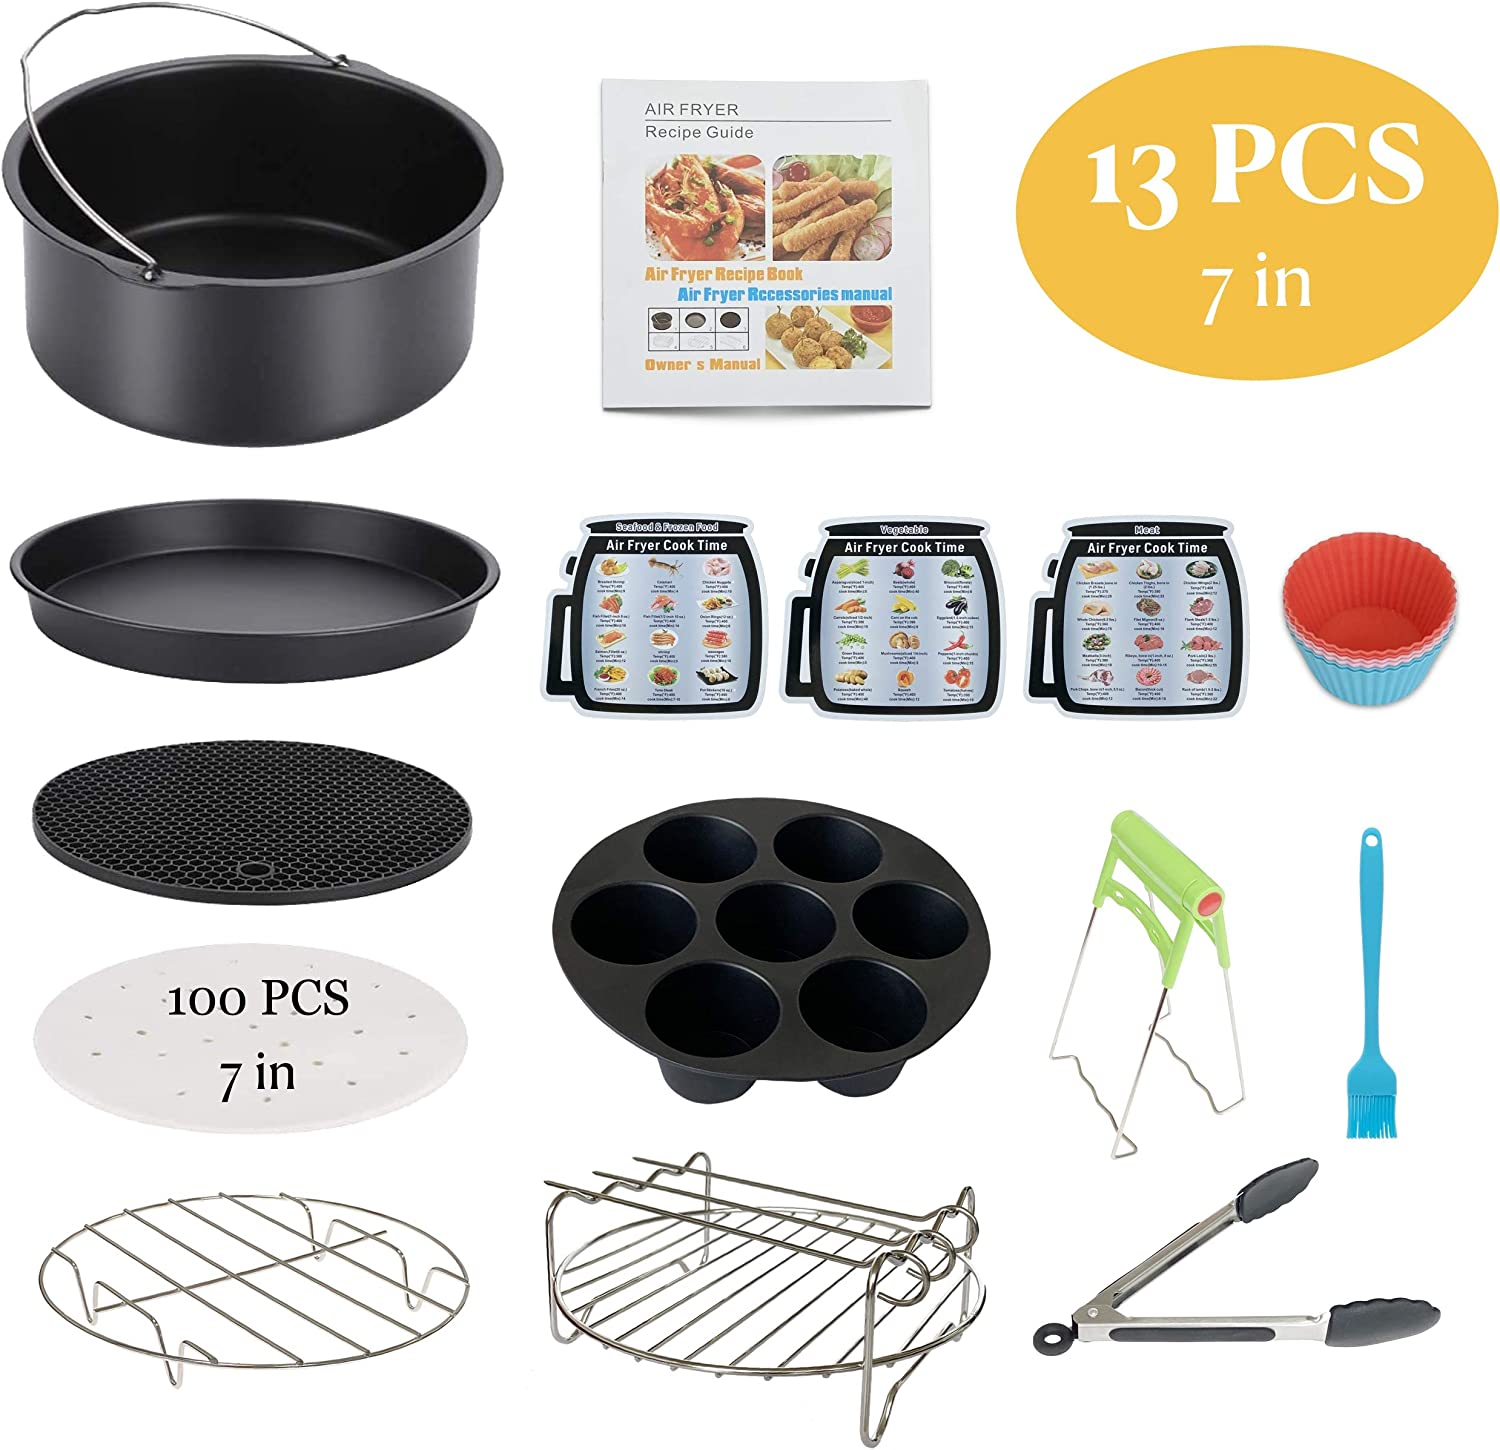 Air Fryer Accessories 13PCS for Phillips Nuwave Gowise Gourmia Ninja Dash Air Fryer, Fit all 3.2-4.0-5.8QT Air Fryer with 7 Inch Cake Pan, Pizza Pan, Silicone Baking Cups, Skewer Rack, Parchment Paper